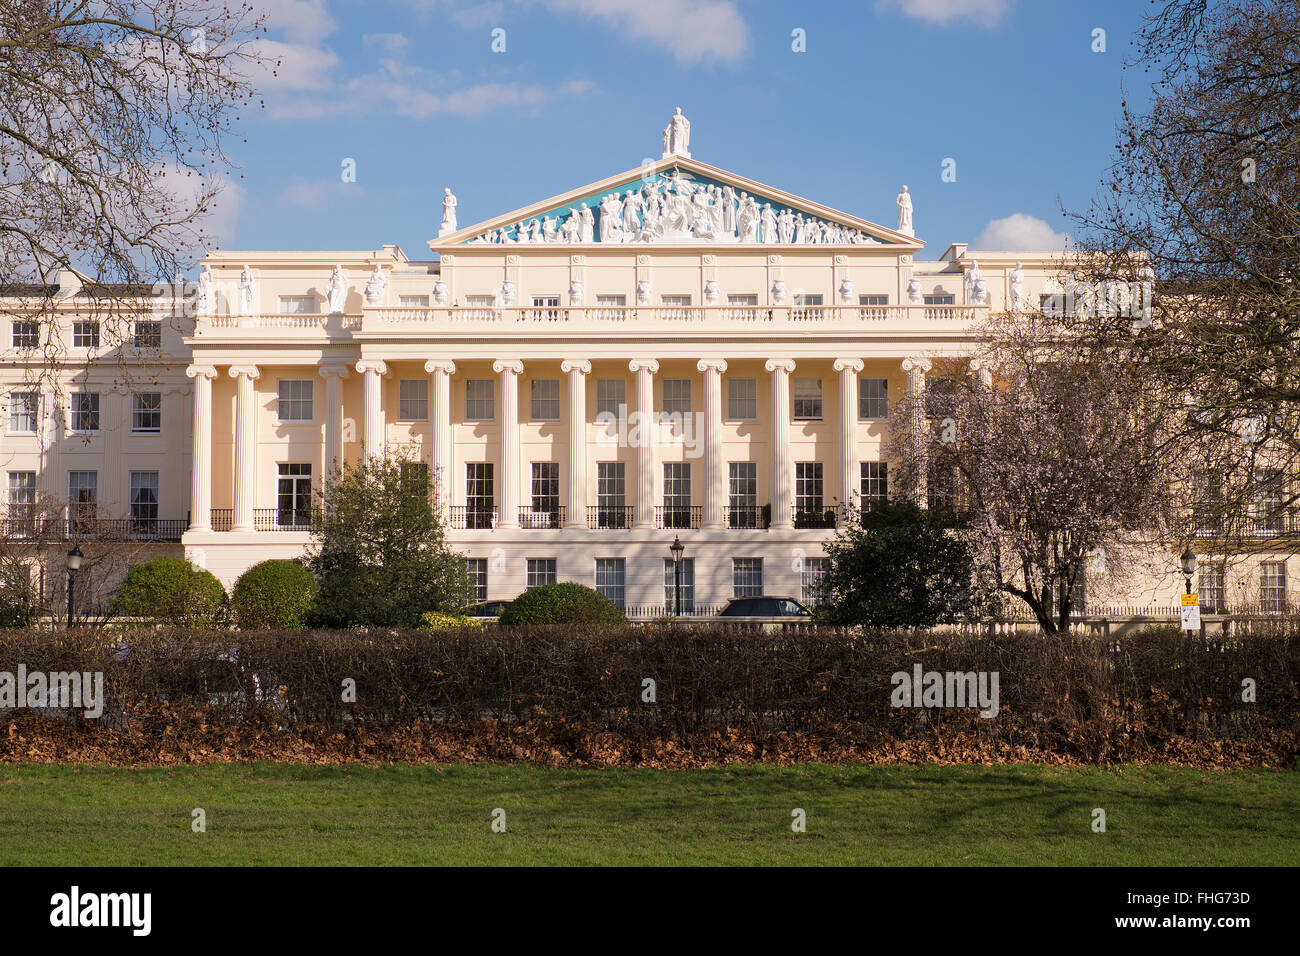 Exterior view of Cumberland Terrace designed by John Nash in winter London Stock Photo